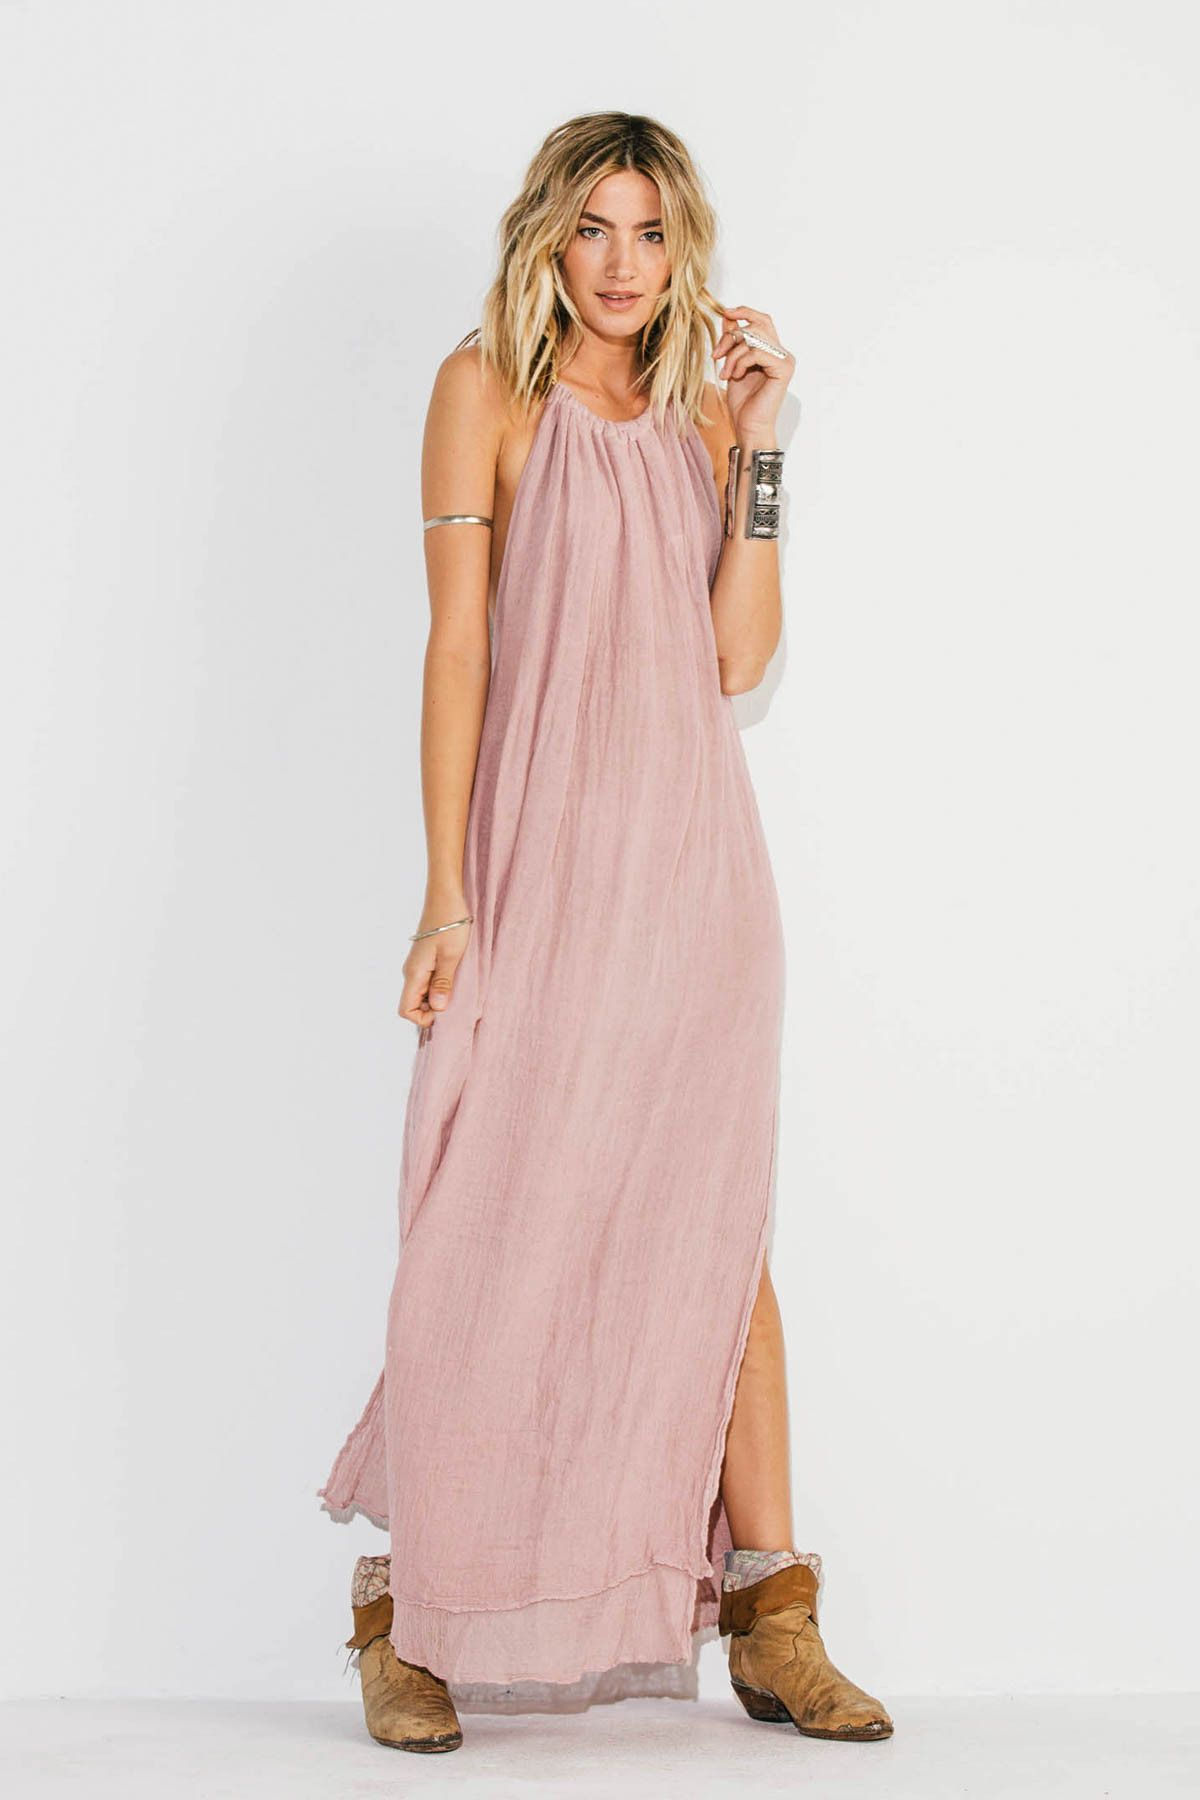 Grecian Margarita Maxi Dress - SPECIAL ORDER | diy clothing | Pinterest